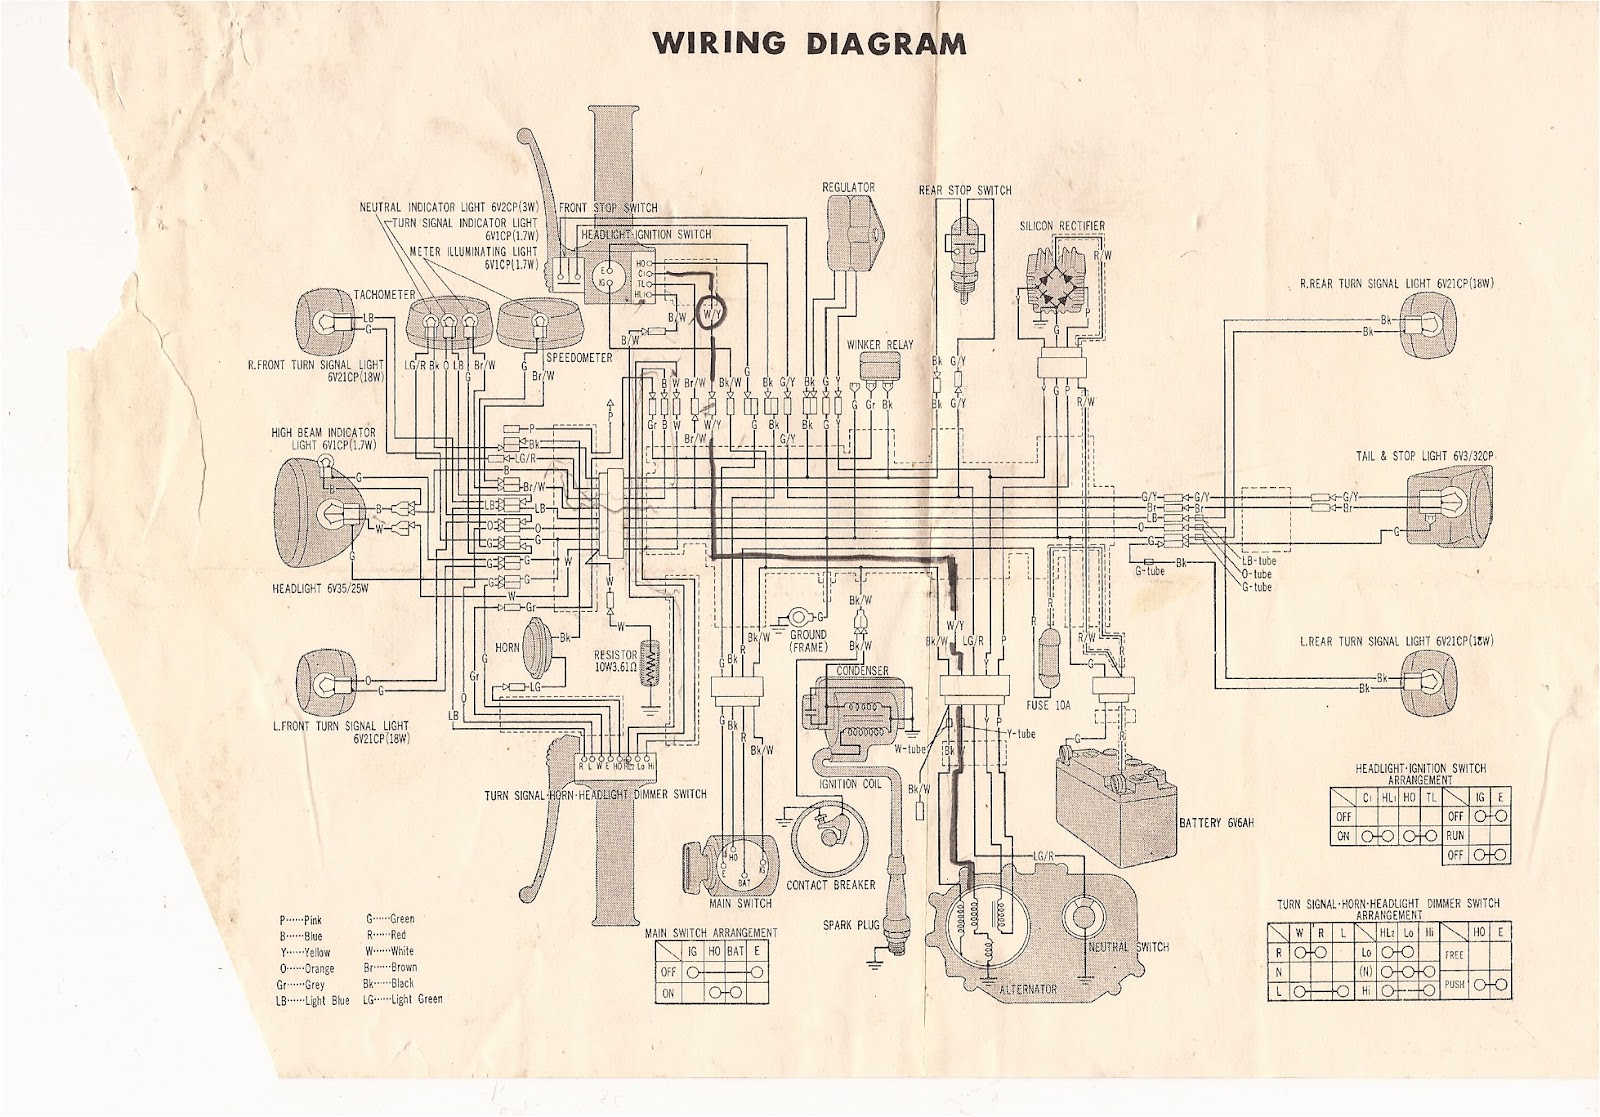 1977 Honda Hobbit Wiring Diagram Great Installation Of 50cc Scooter Engine Diagrams Xl350 Todays Rh 20 14 10 1813weddingbarn Com Parts